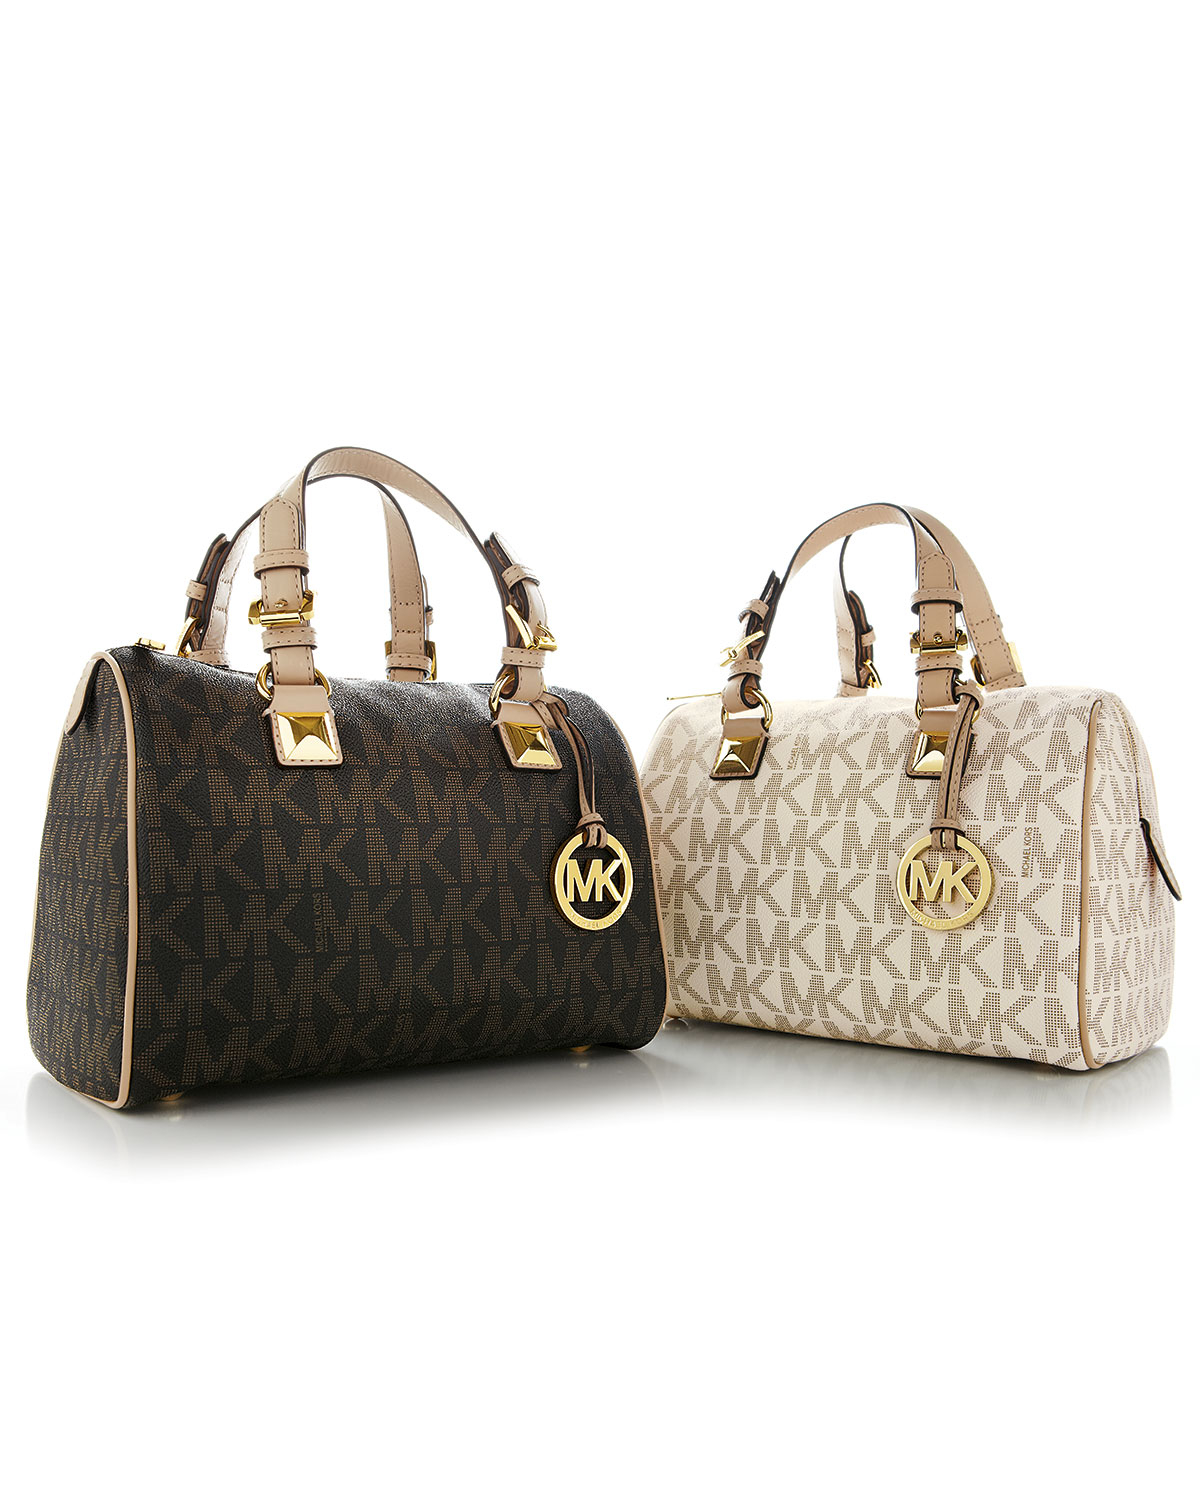 2599caa8d38b Gallery. Previously sold at: Neiman Marcus · Women's Michael Kors Grayson